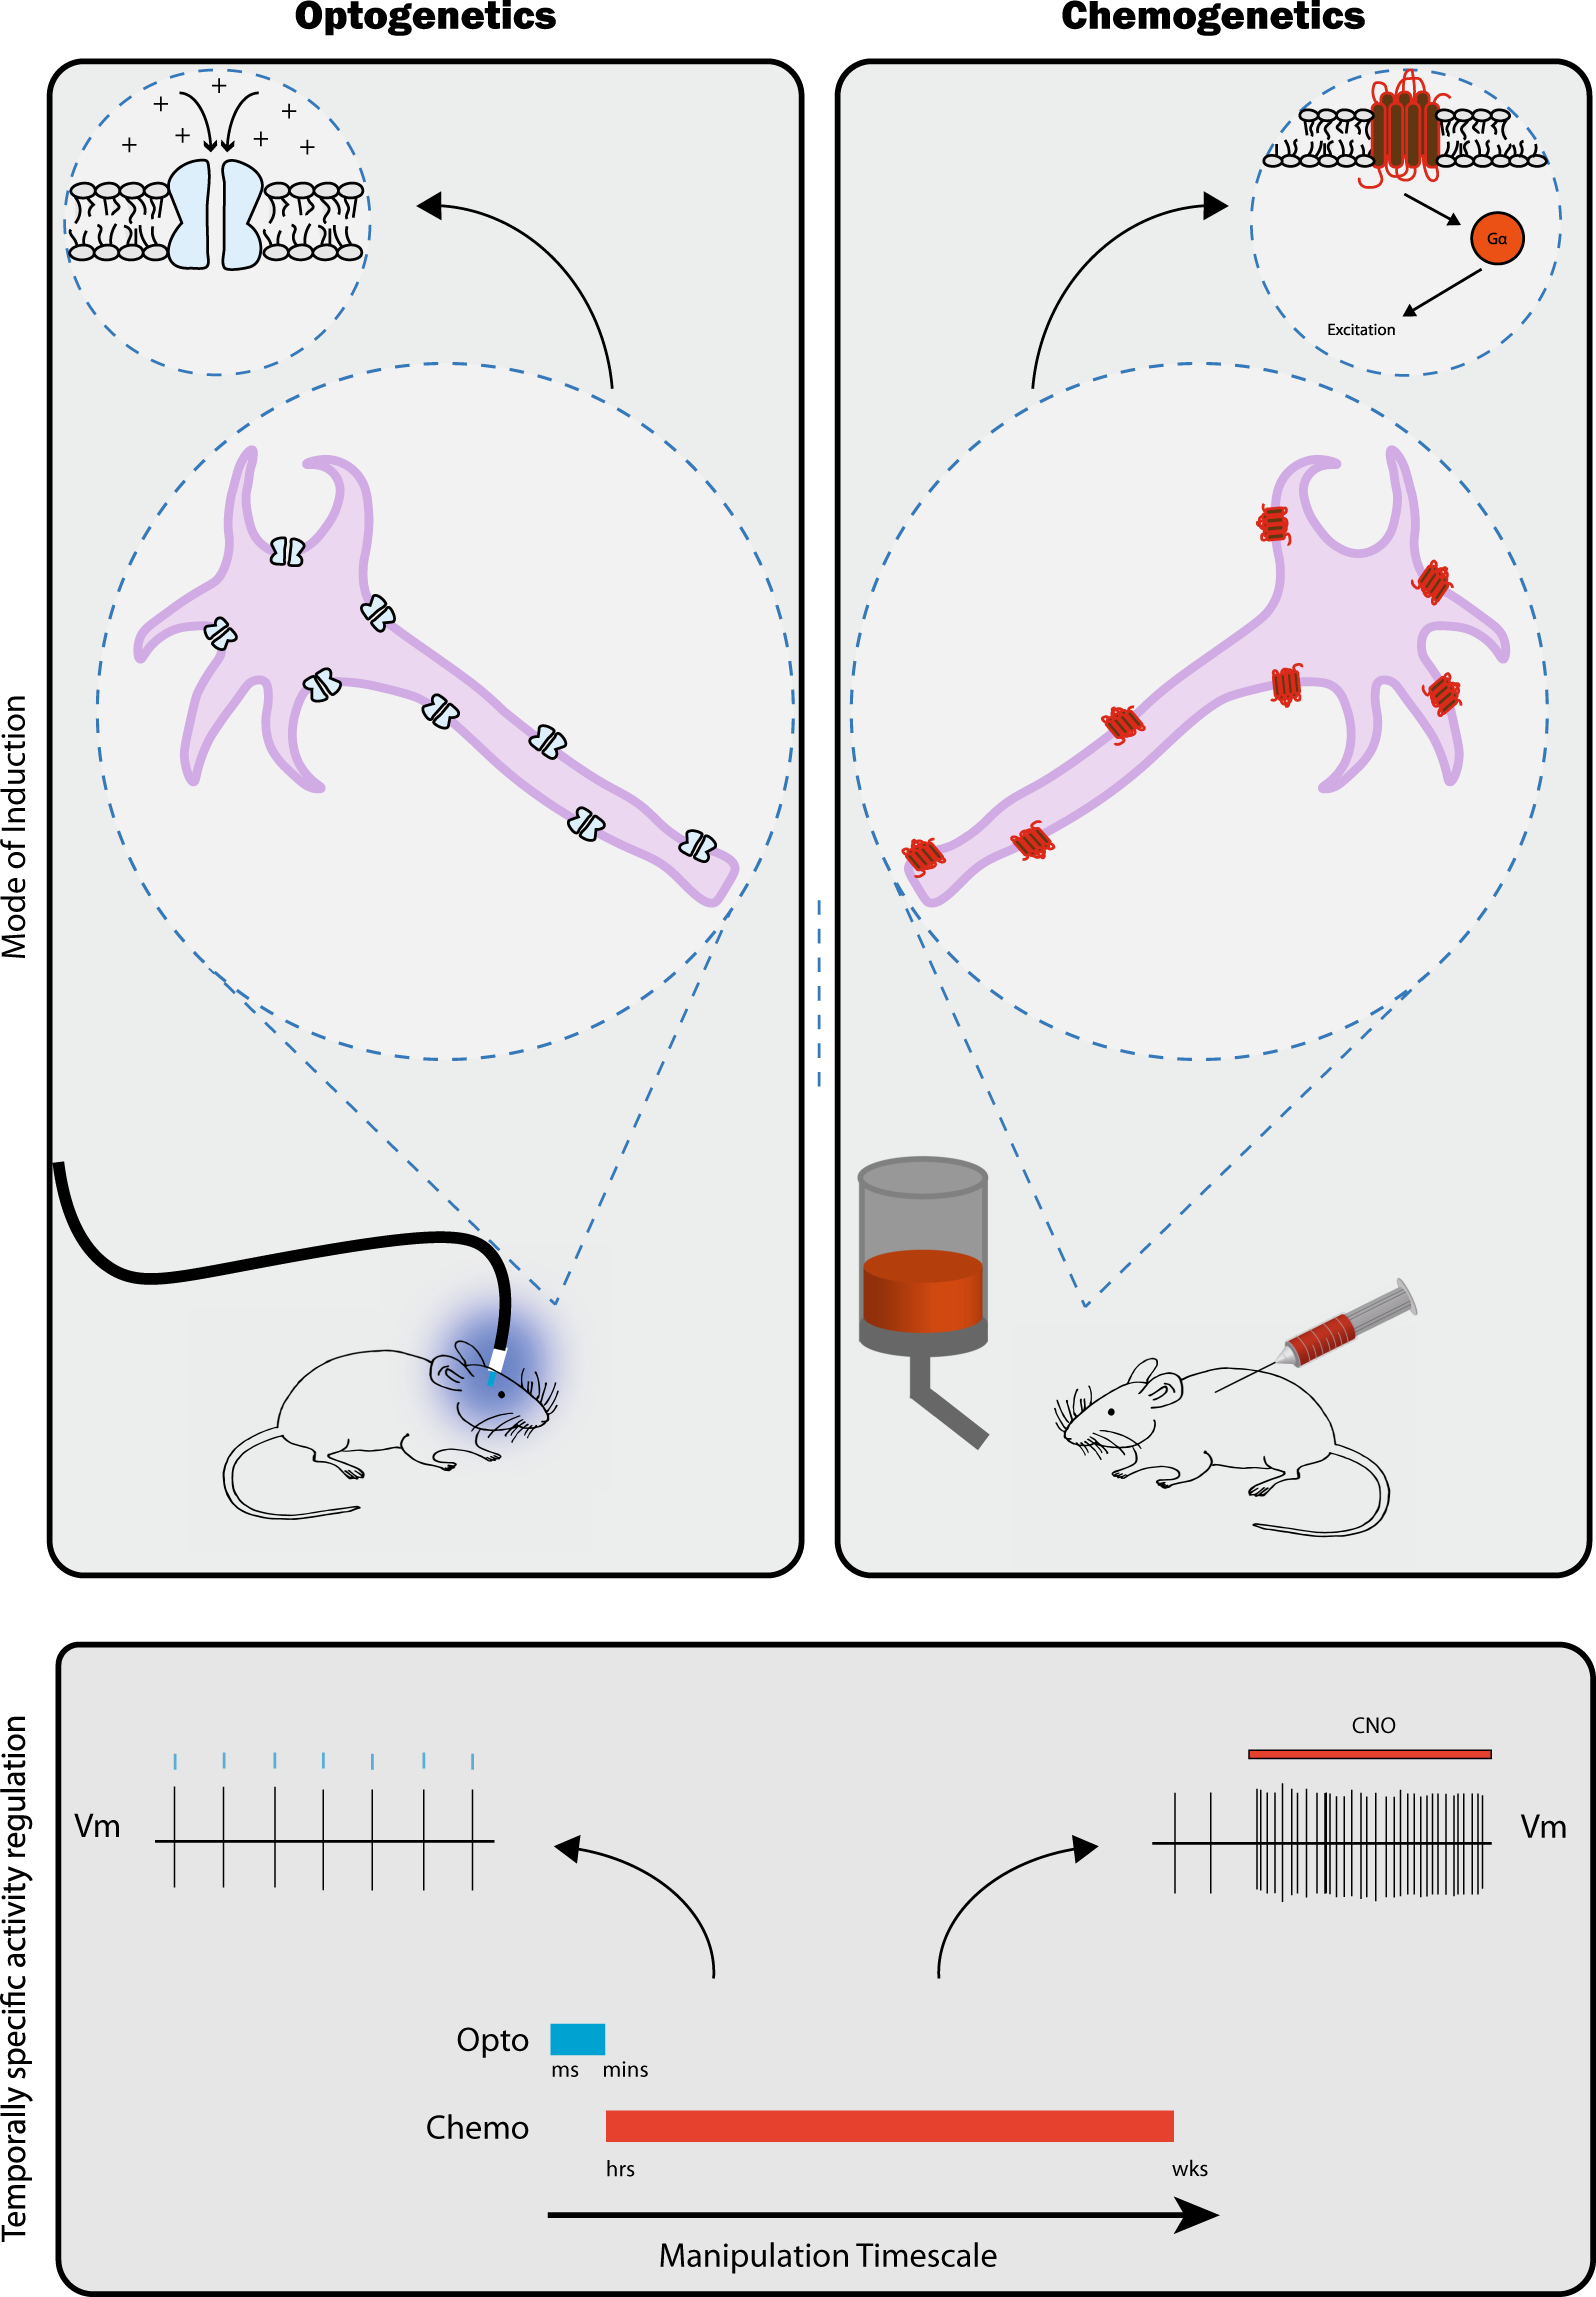 Remarkable Wiring The Depressed Brain Optogenetic And Chemogenetic Circuit Wiring 101 Orsalhahutechinfo